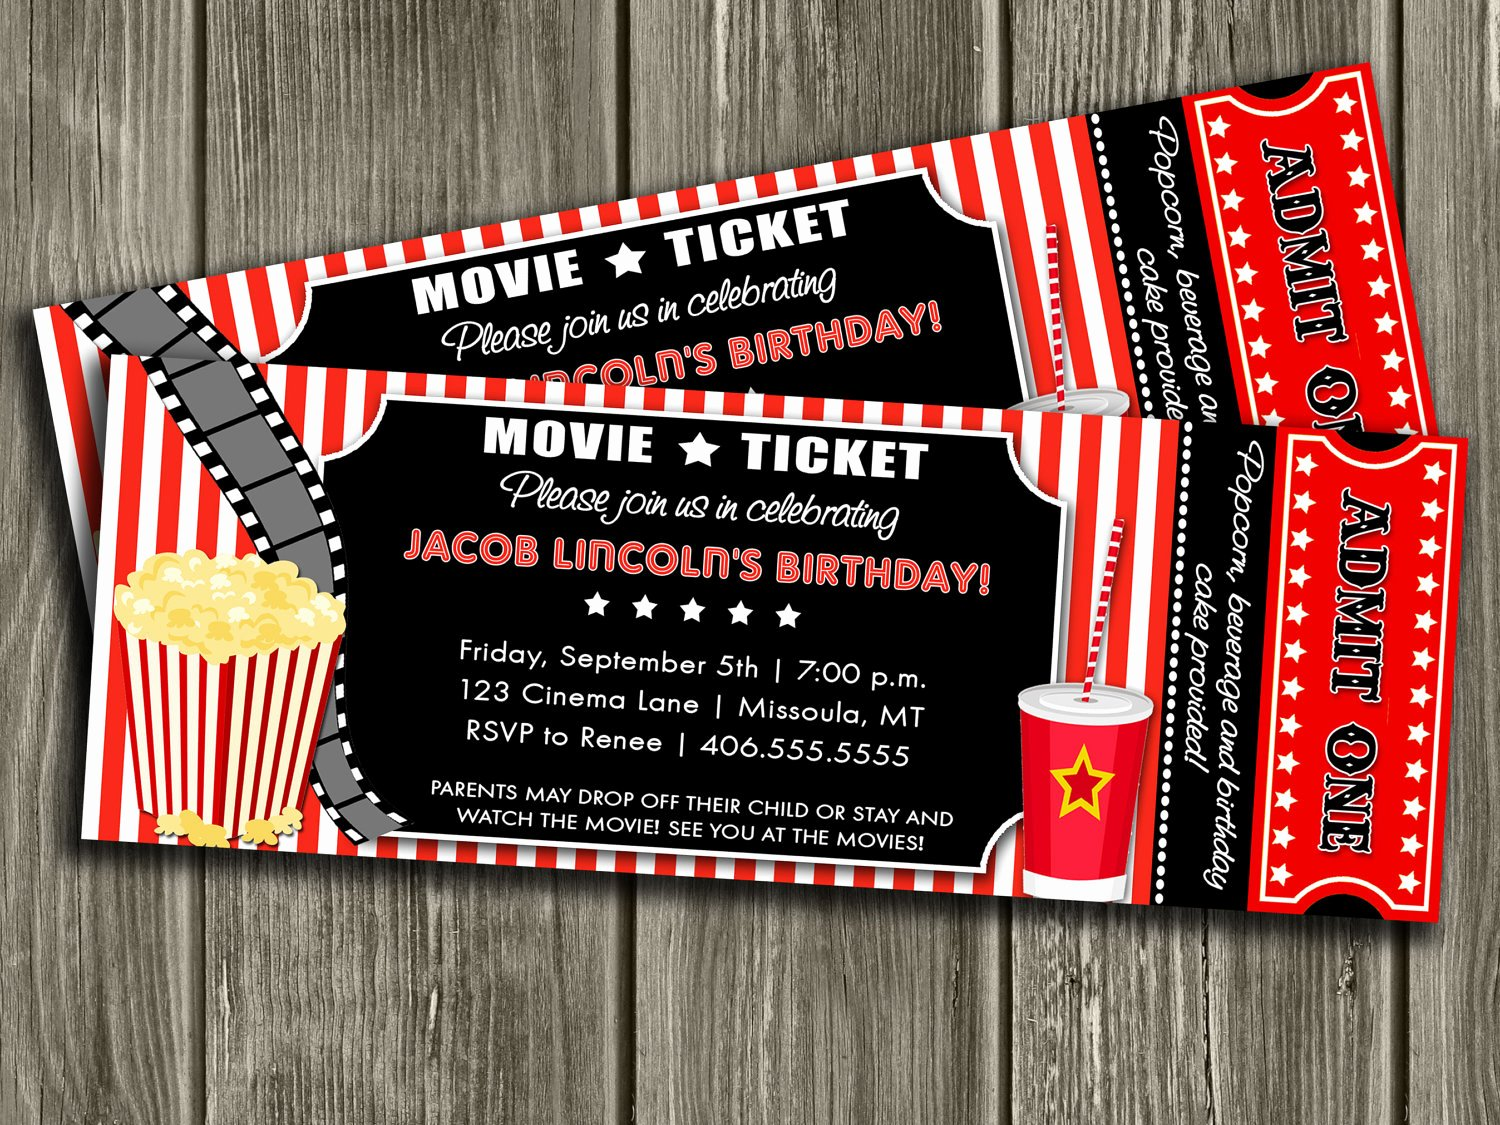 Free Movie Ticket Template Best Of Template Movie Ticket Invitation Template